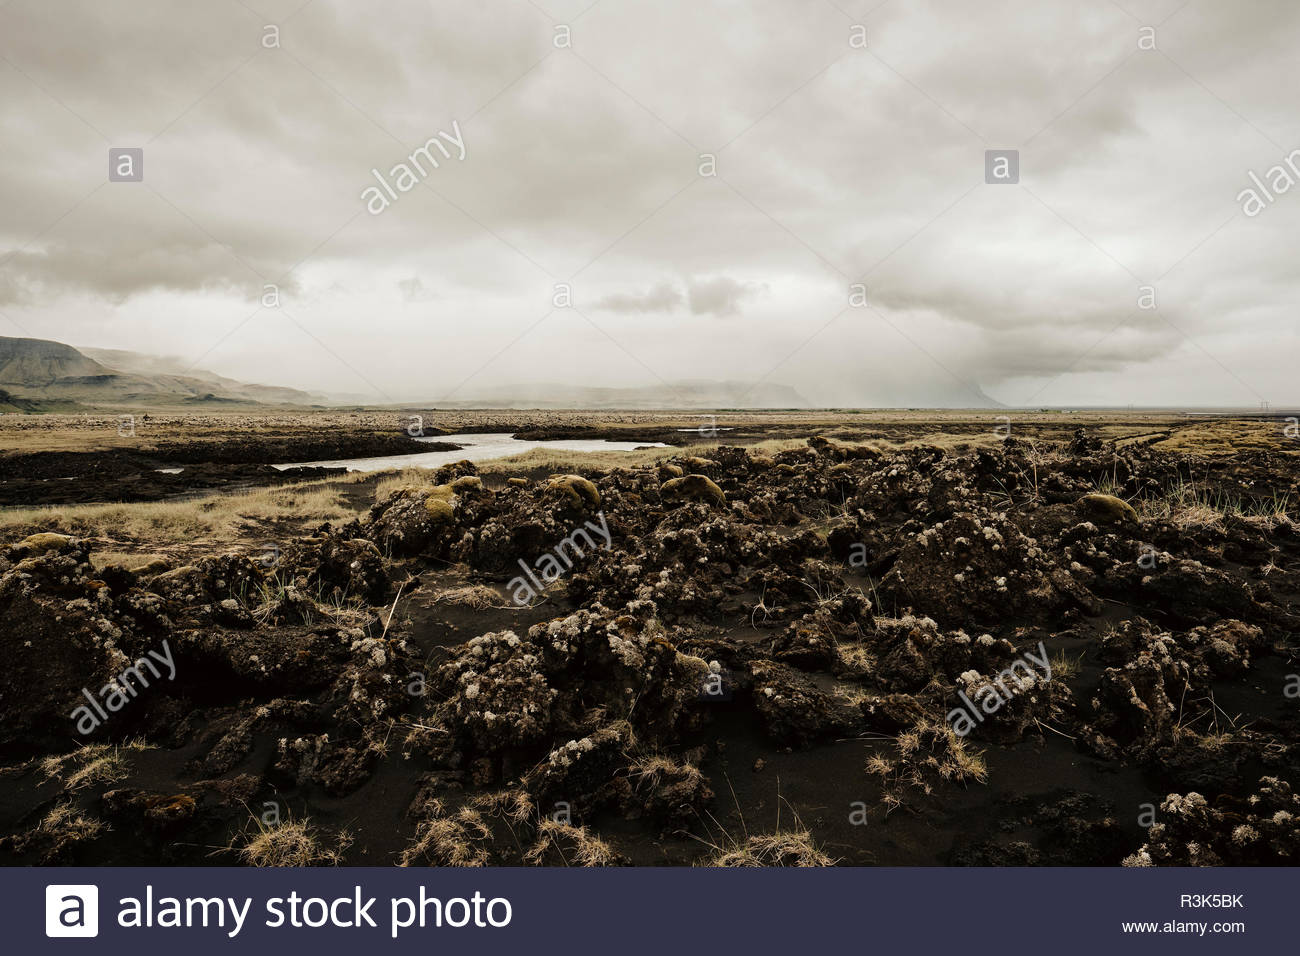 The empty moss covered volcanic lava fields in the south of Iceland. - Stock Image